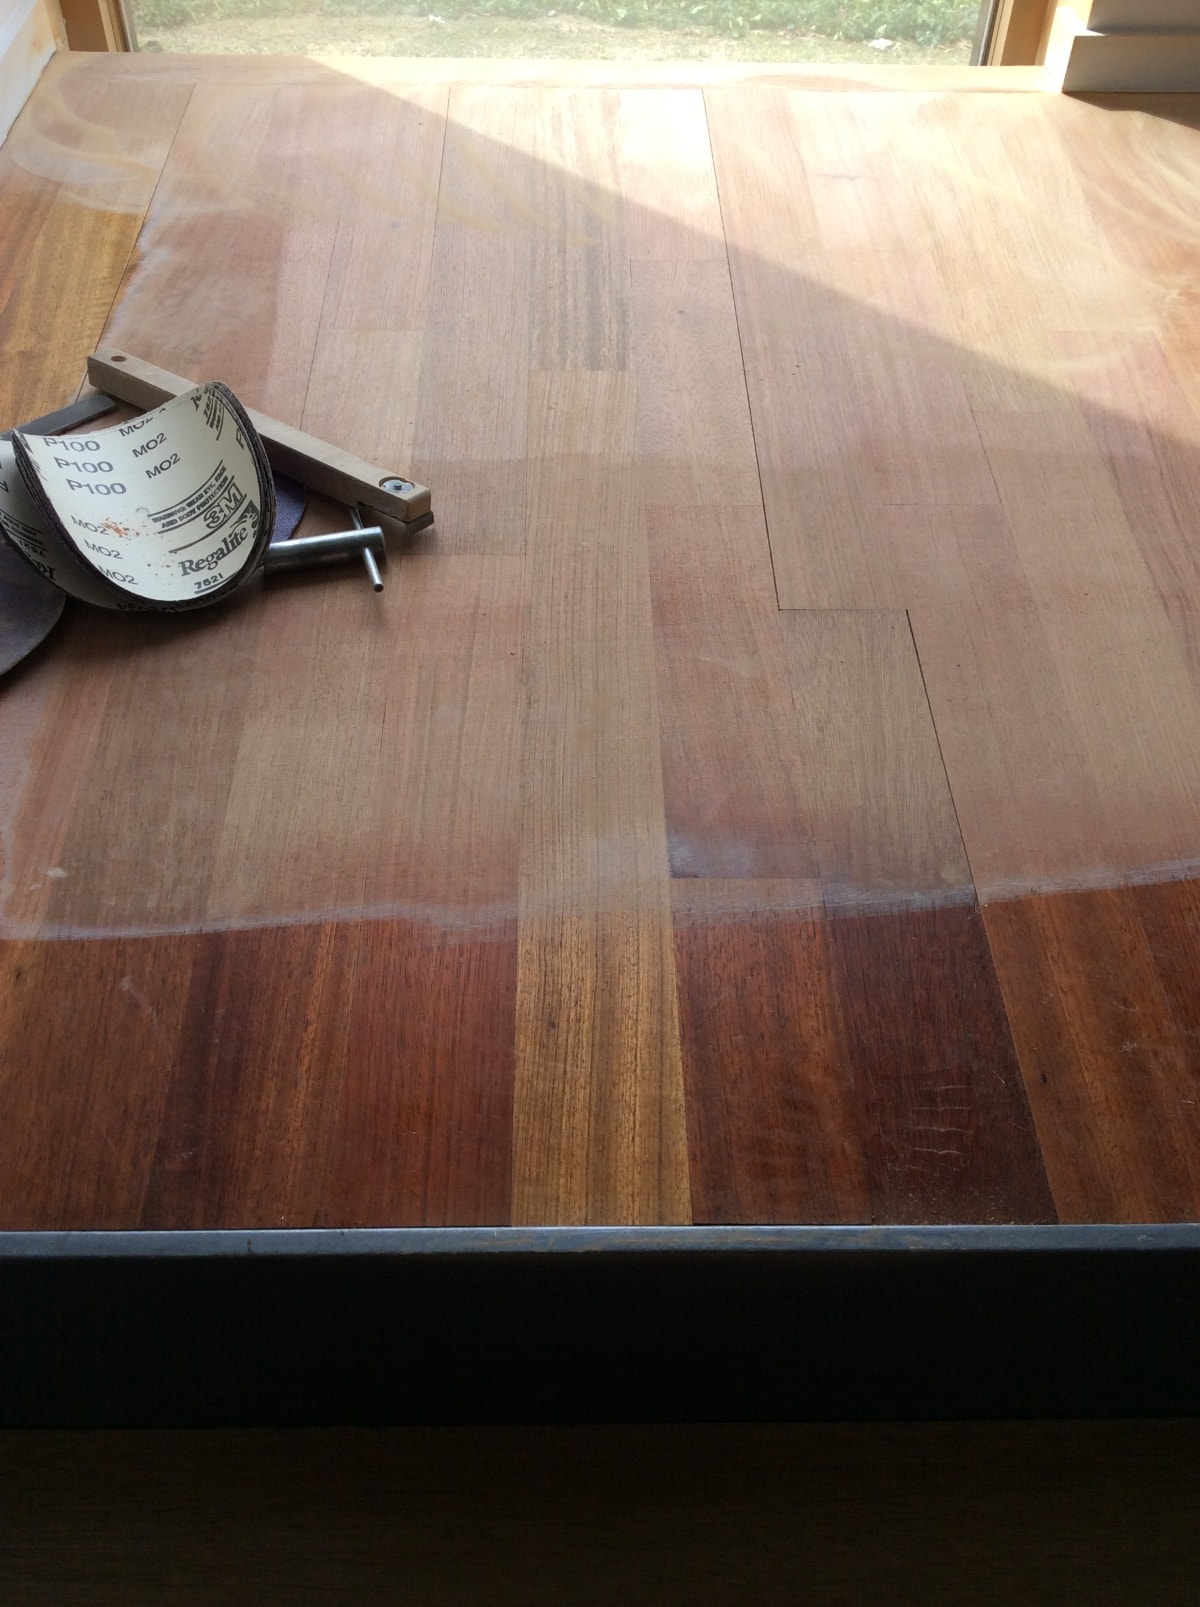 Brazilian Cherry Floors Medford MA 1-min